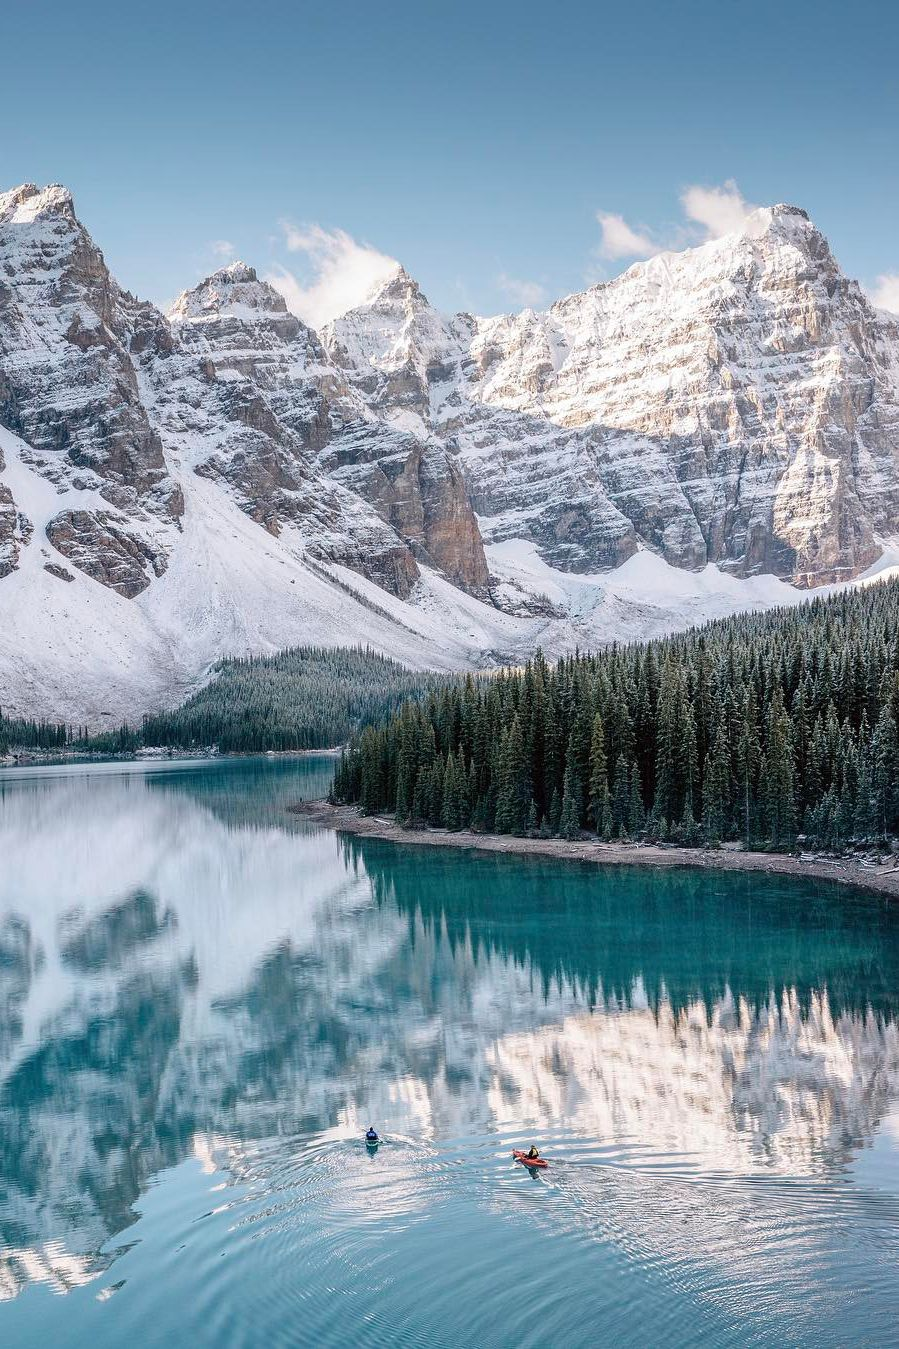 Kayaking in Banff National Park (: Stevin Tuchiwsky) | Outdoor Life & Travel Adventures